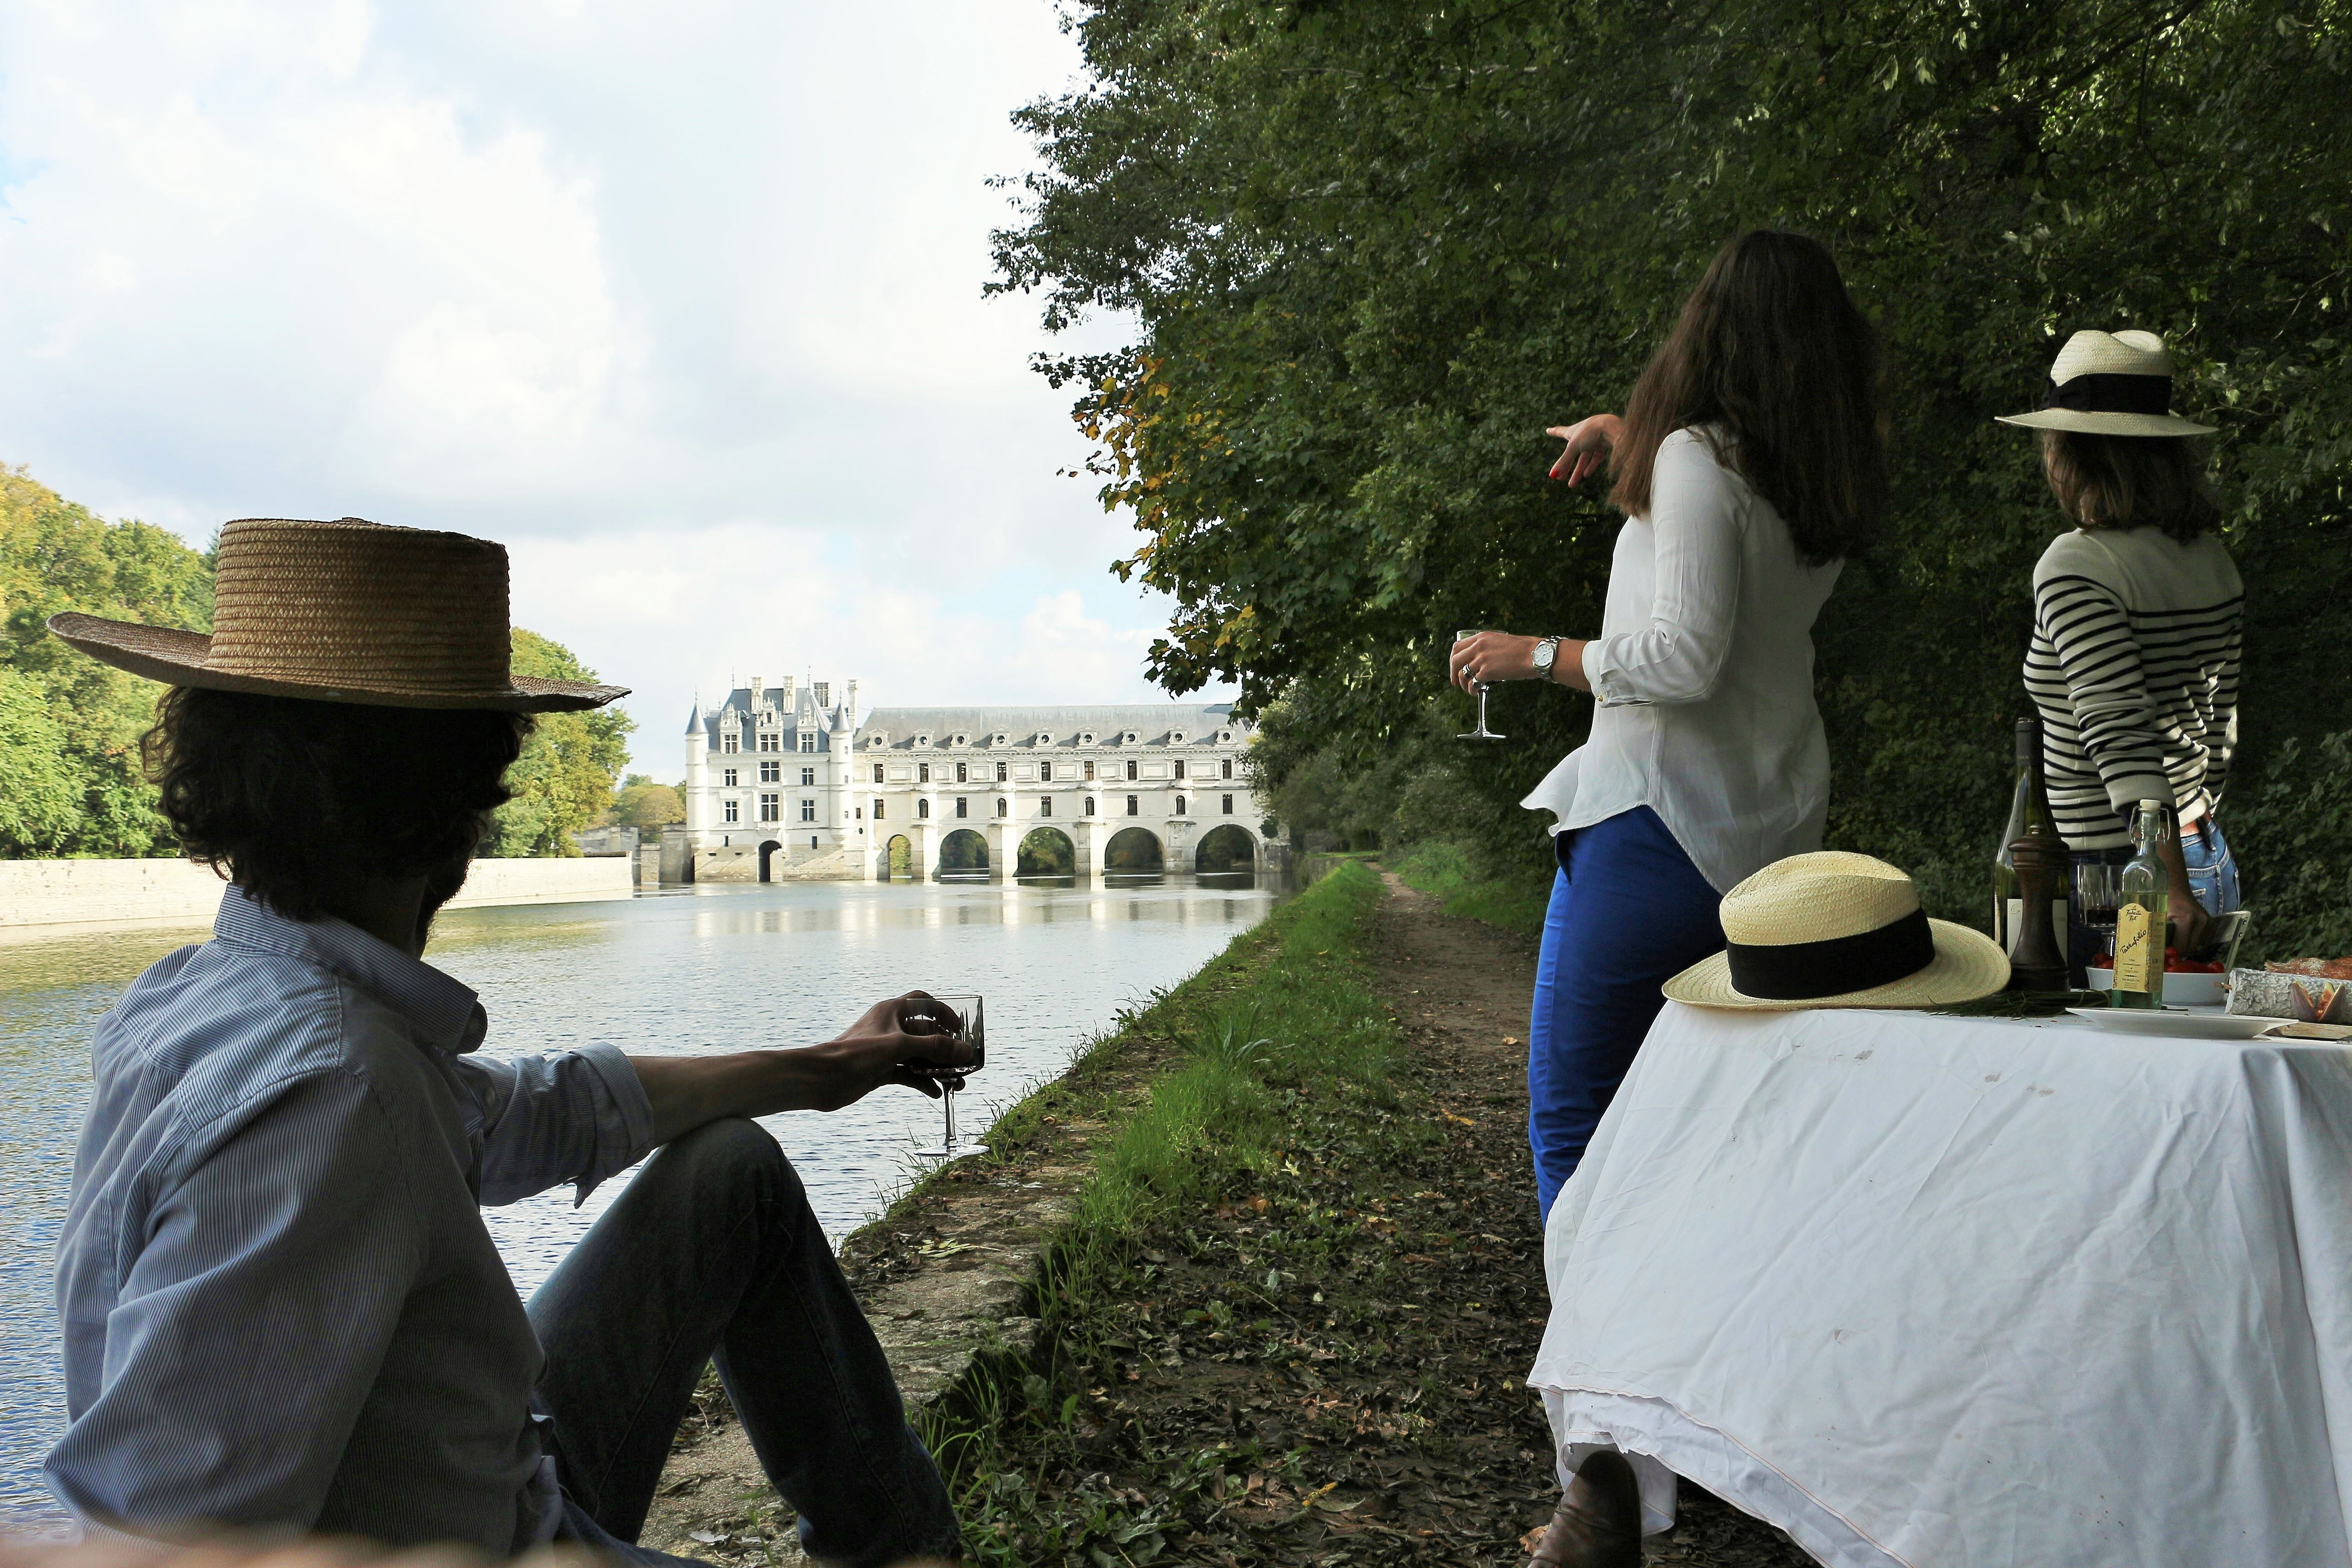 ALL INCLUDED FULL DAY EXCURSION TO CHAMBORD/CHENONCEAU AND TRADITIONAL LUNCH IN A FAMILY CASTLE WITH OLALOIRE